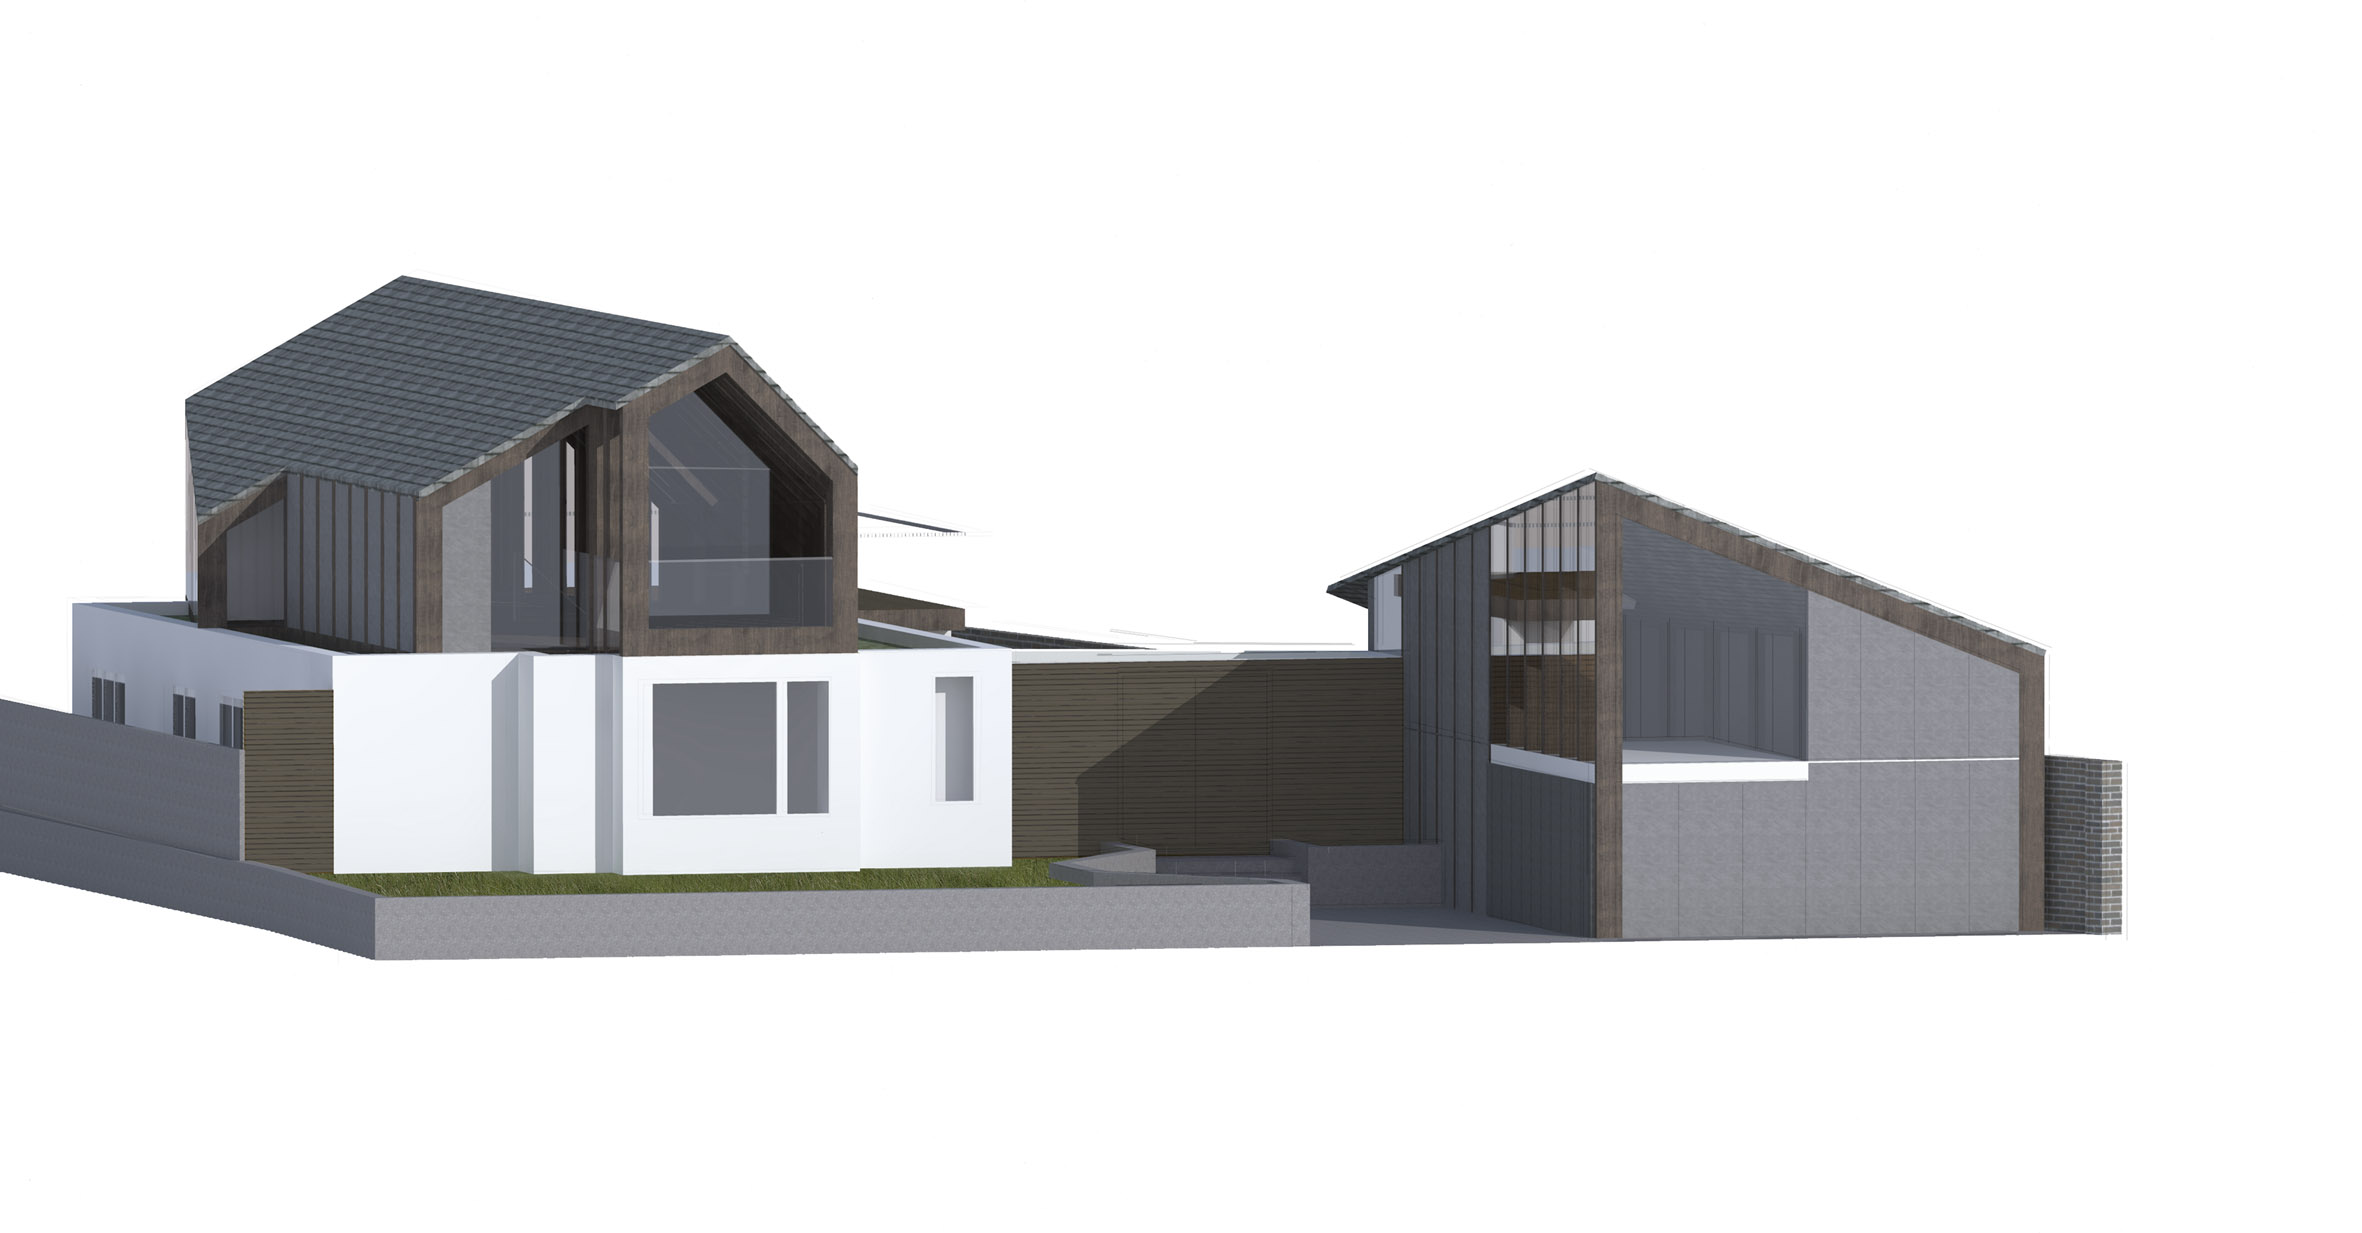 Cononbie_Front Elevation 2